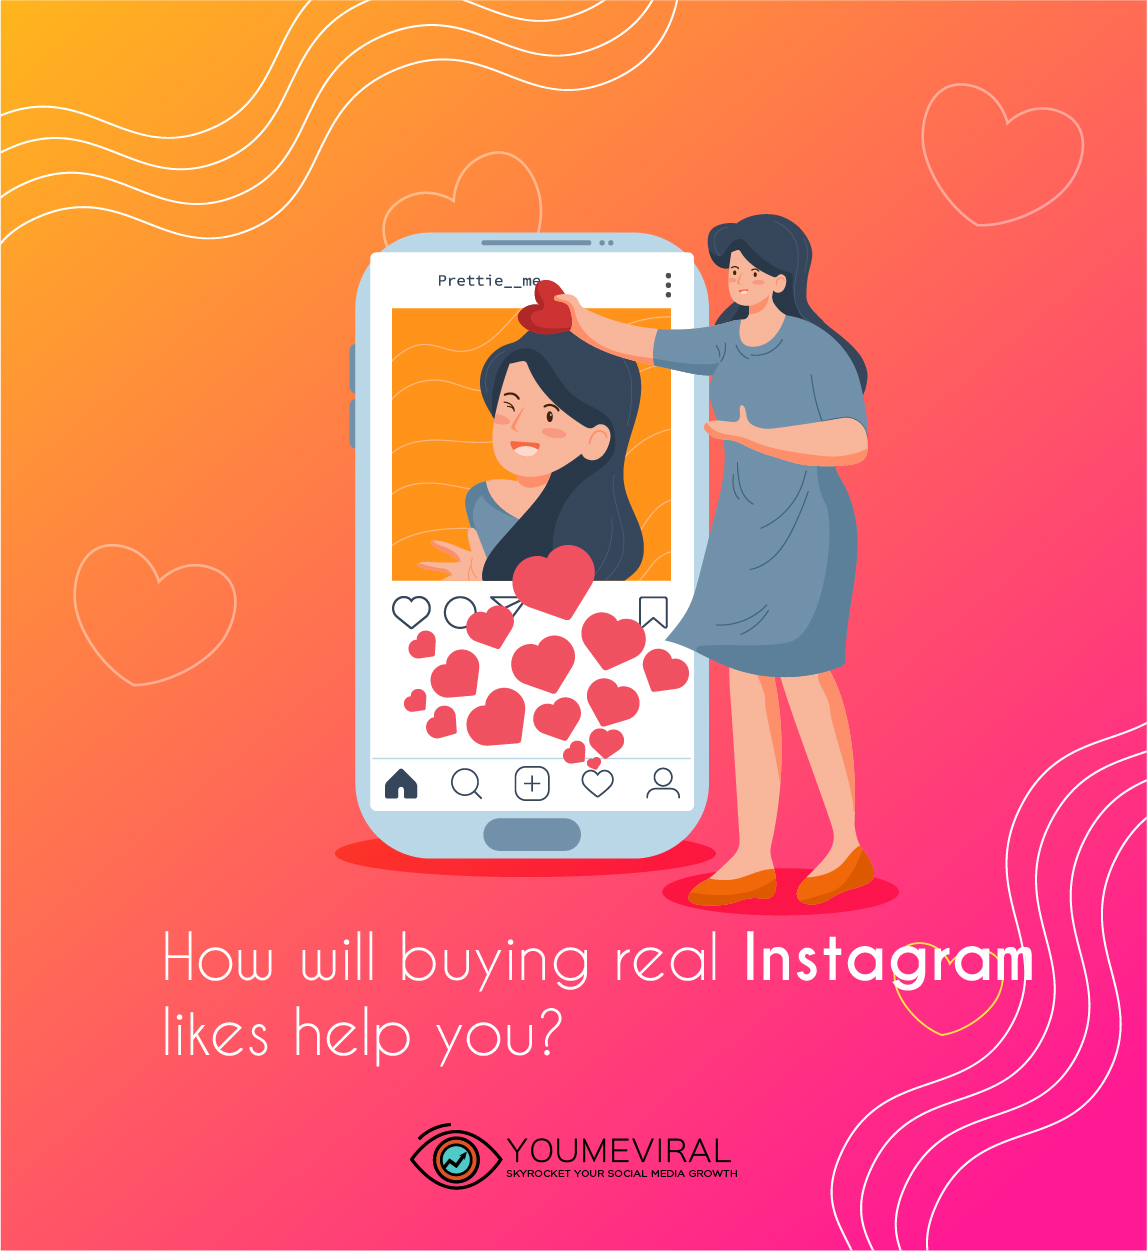 How will buying real Instagram likes help you?